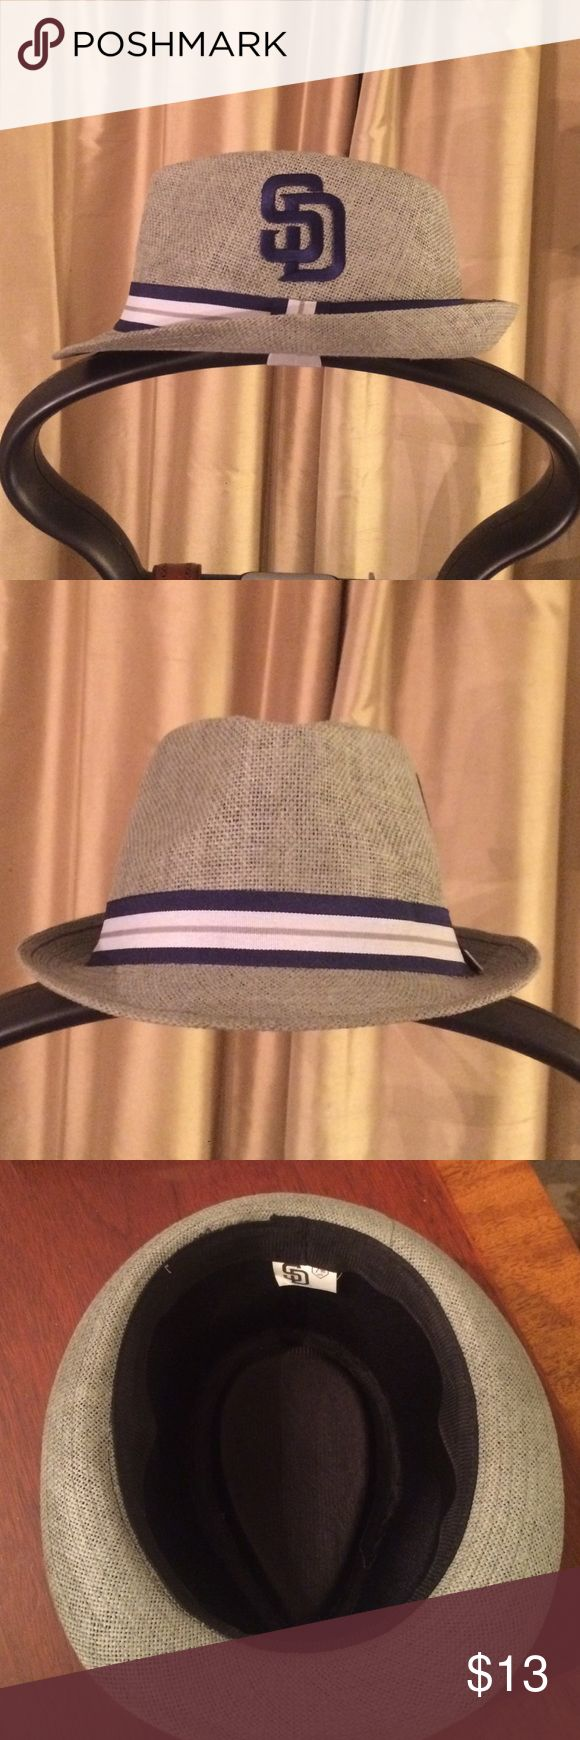 San Diego Padres Light Grey Fedora San Diego Padres Fedora! Light gray with navy white and grey accents. Size 7 3/8. In very good shape! Thanks for looking! Accessories Hats